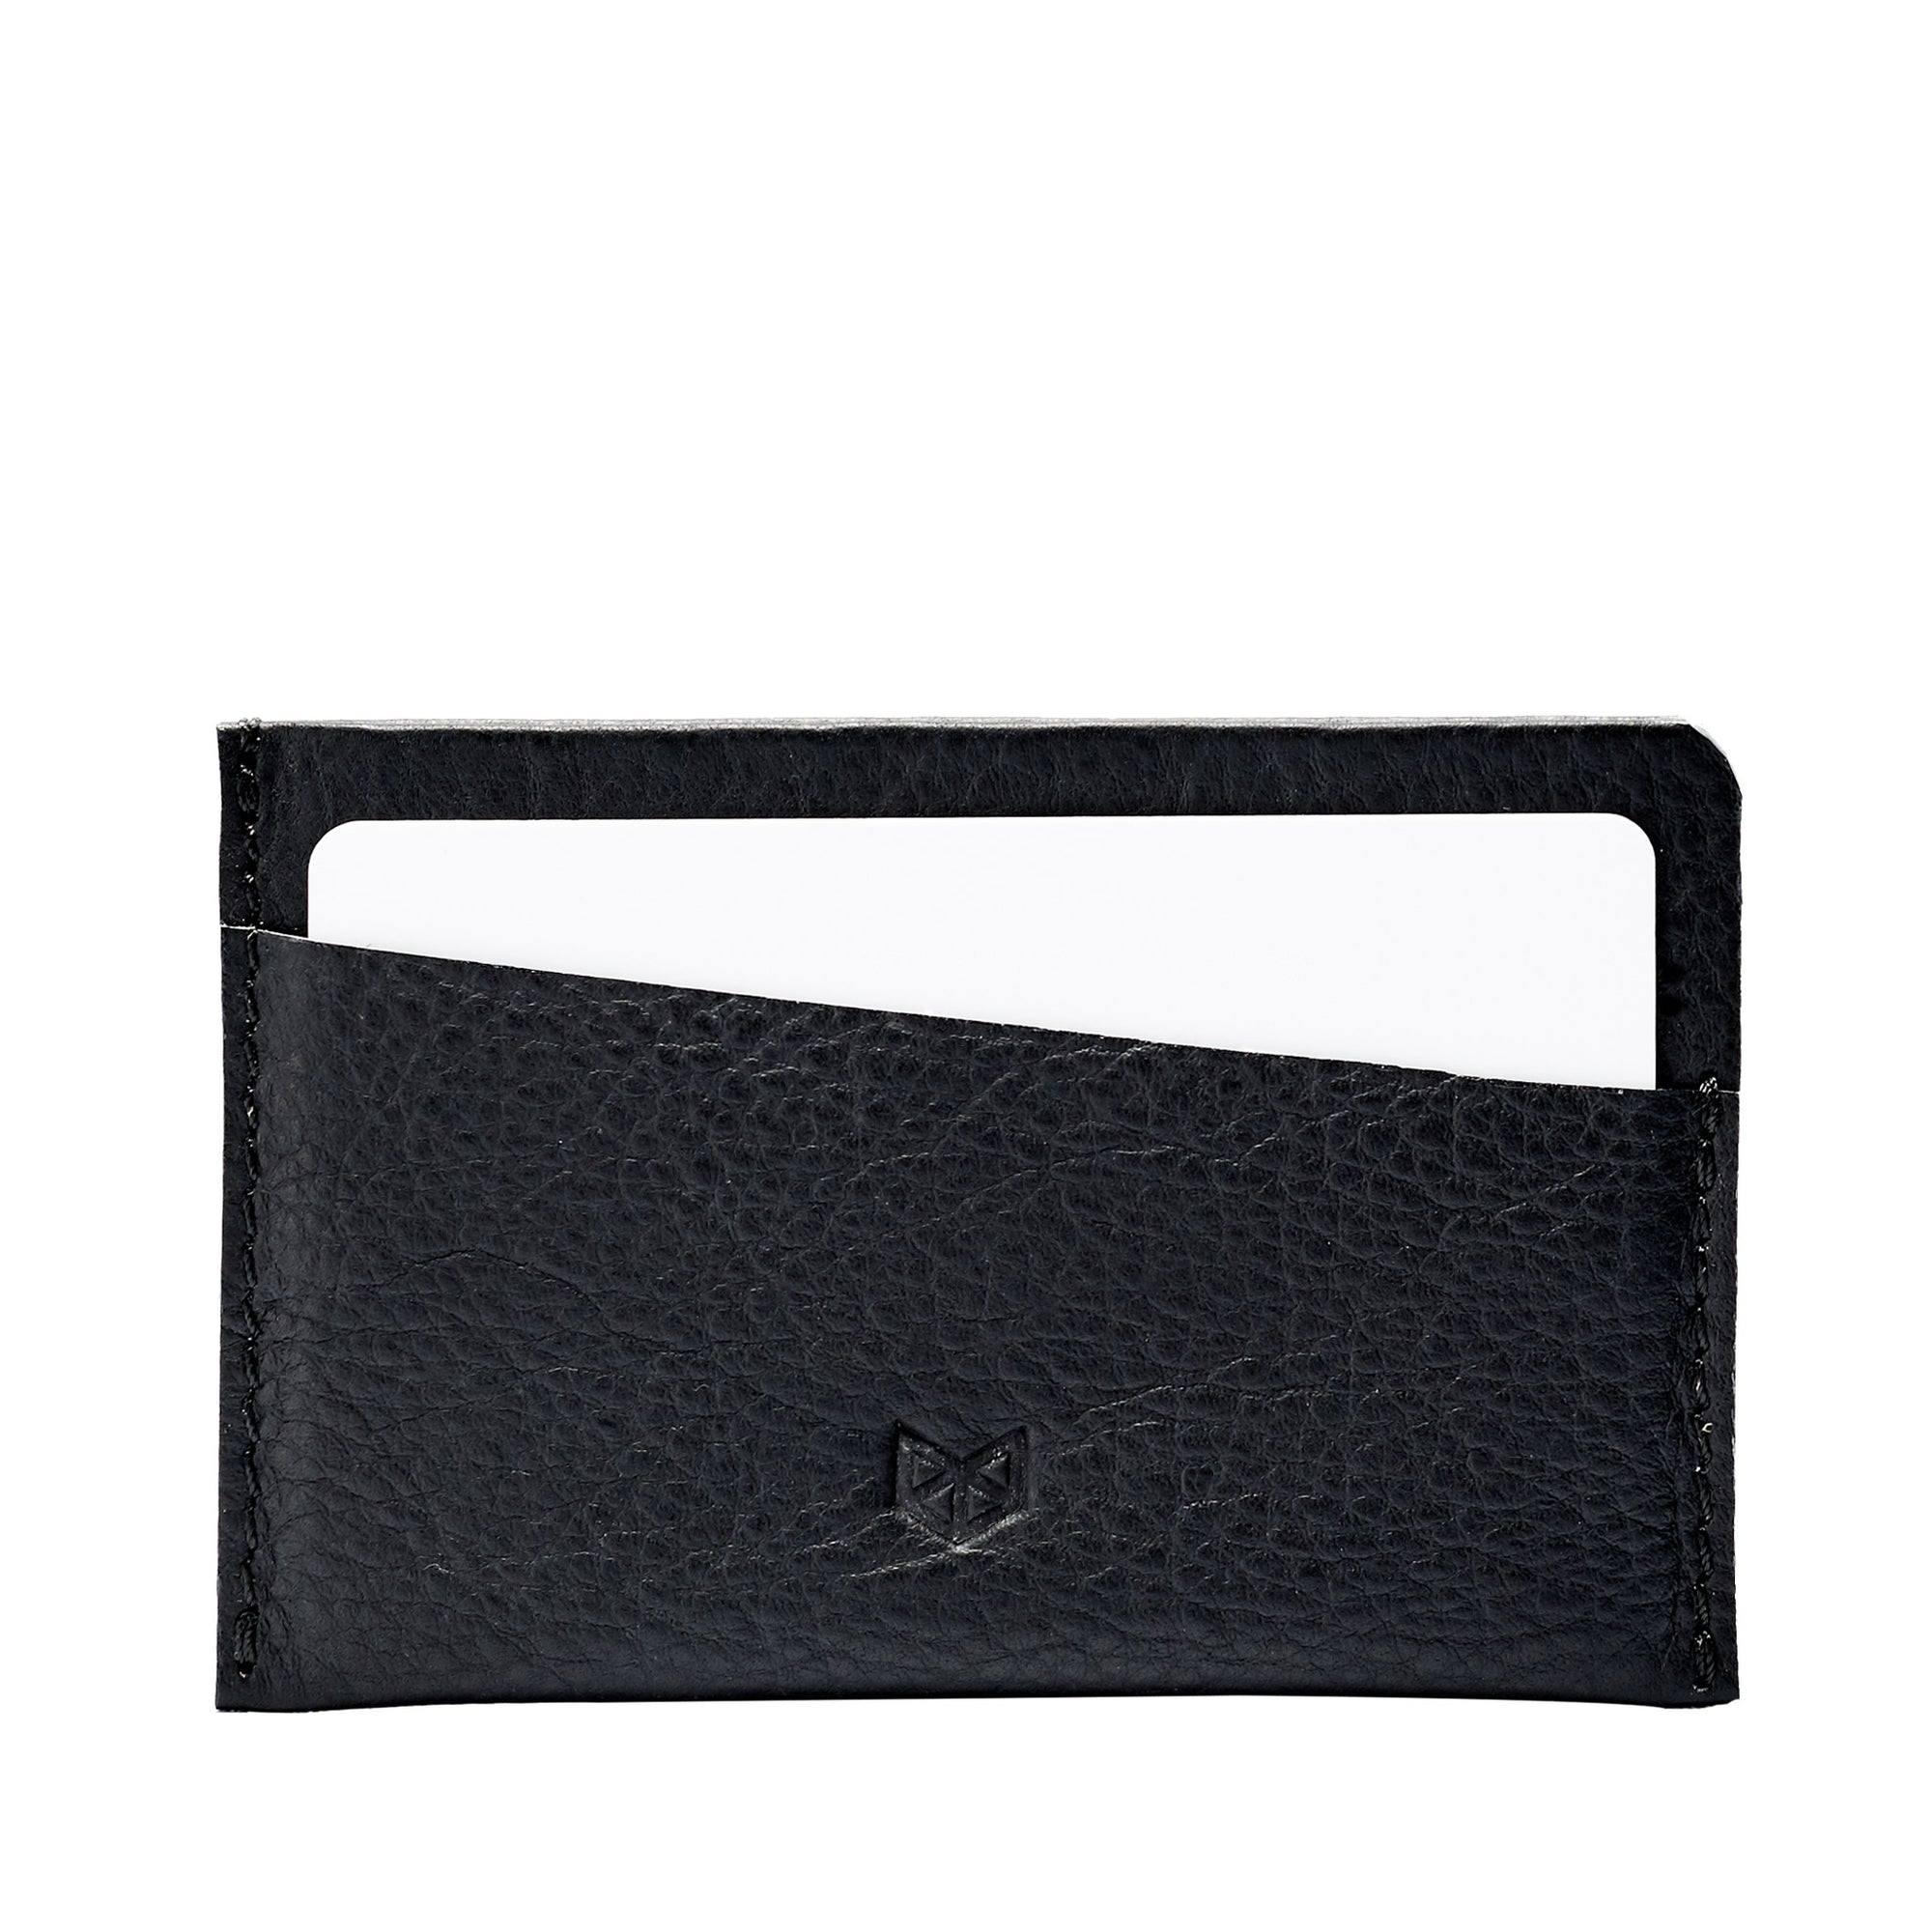 Leather black cards cardholder business cards sleeve. Perfect gift for men. Capra Leather